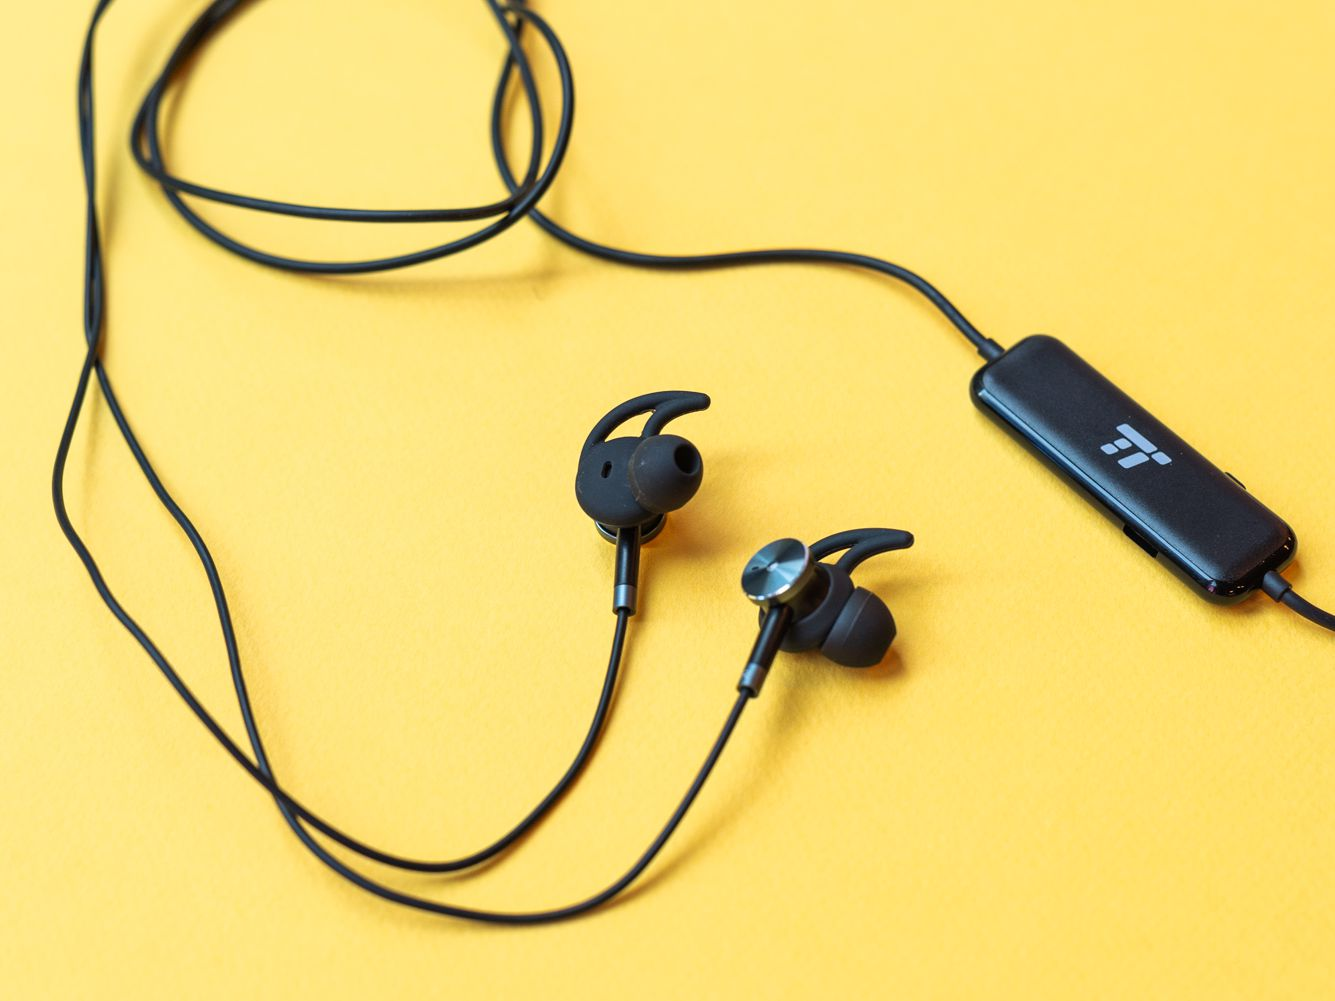 The 10 Best Earbuds of 2019